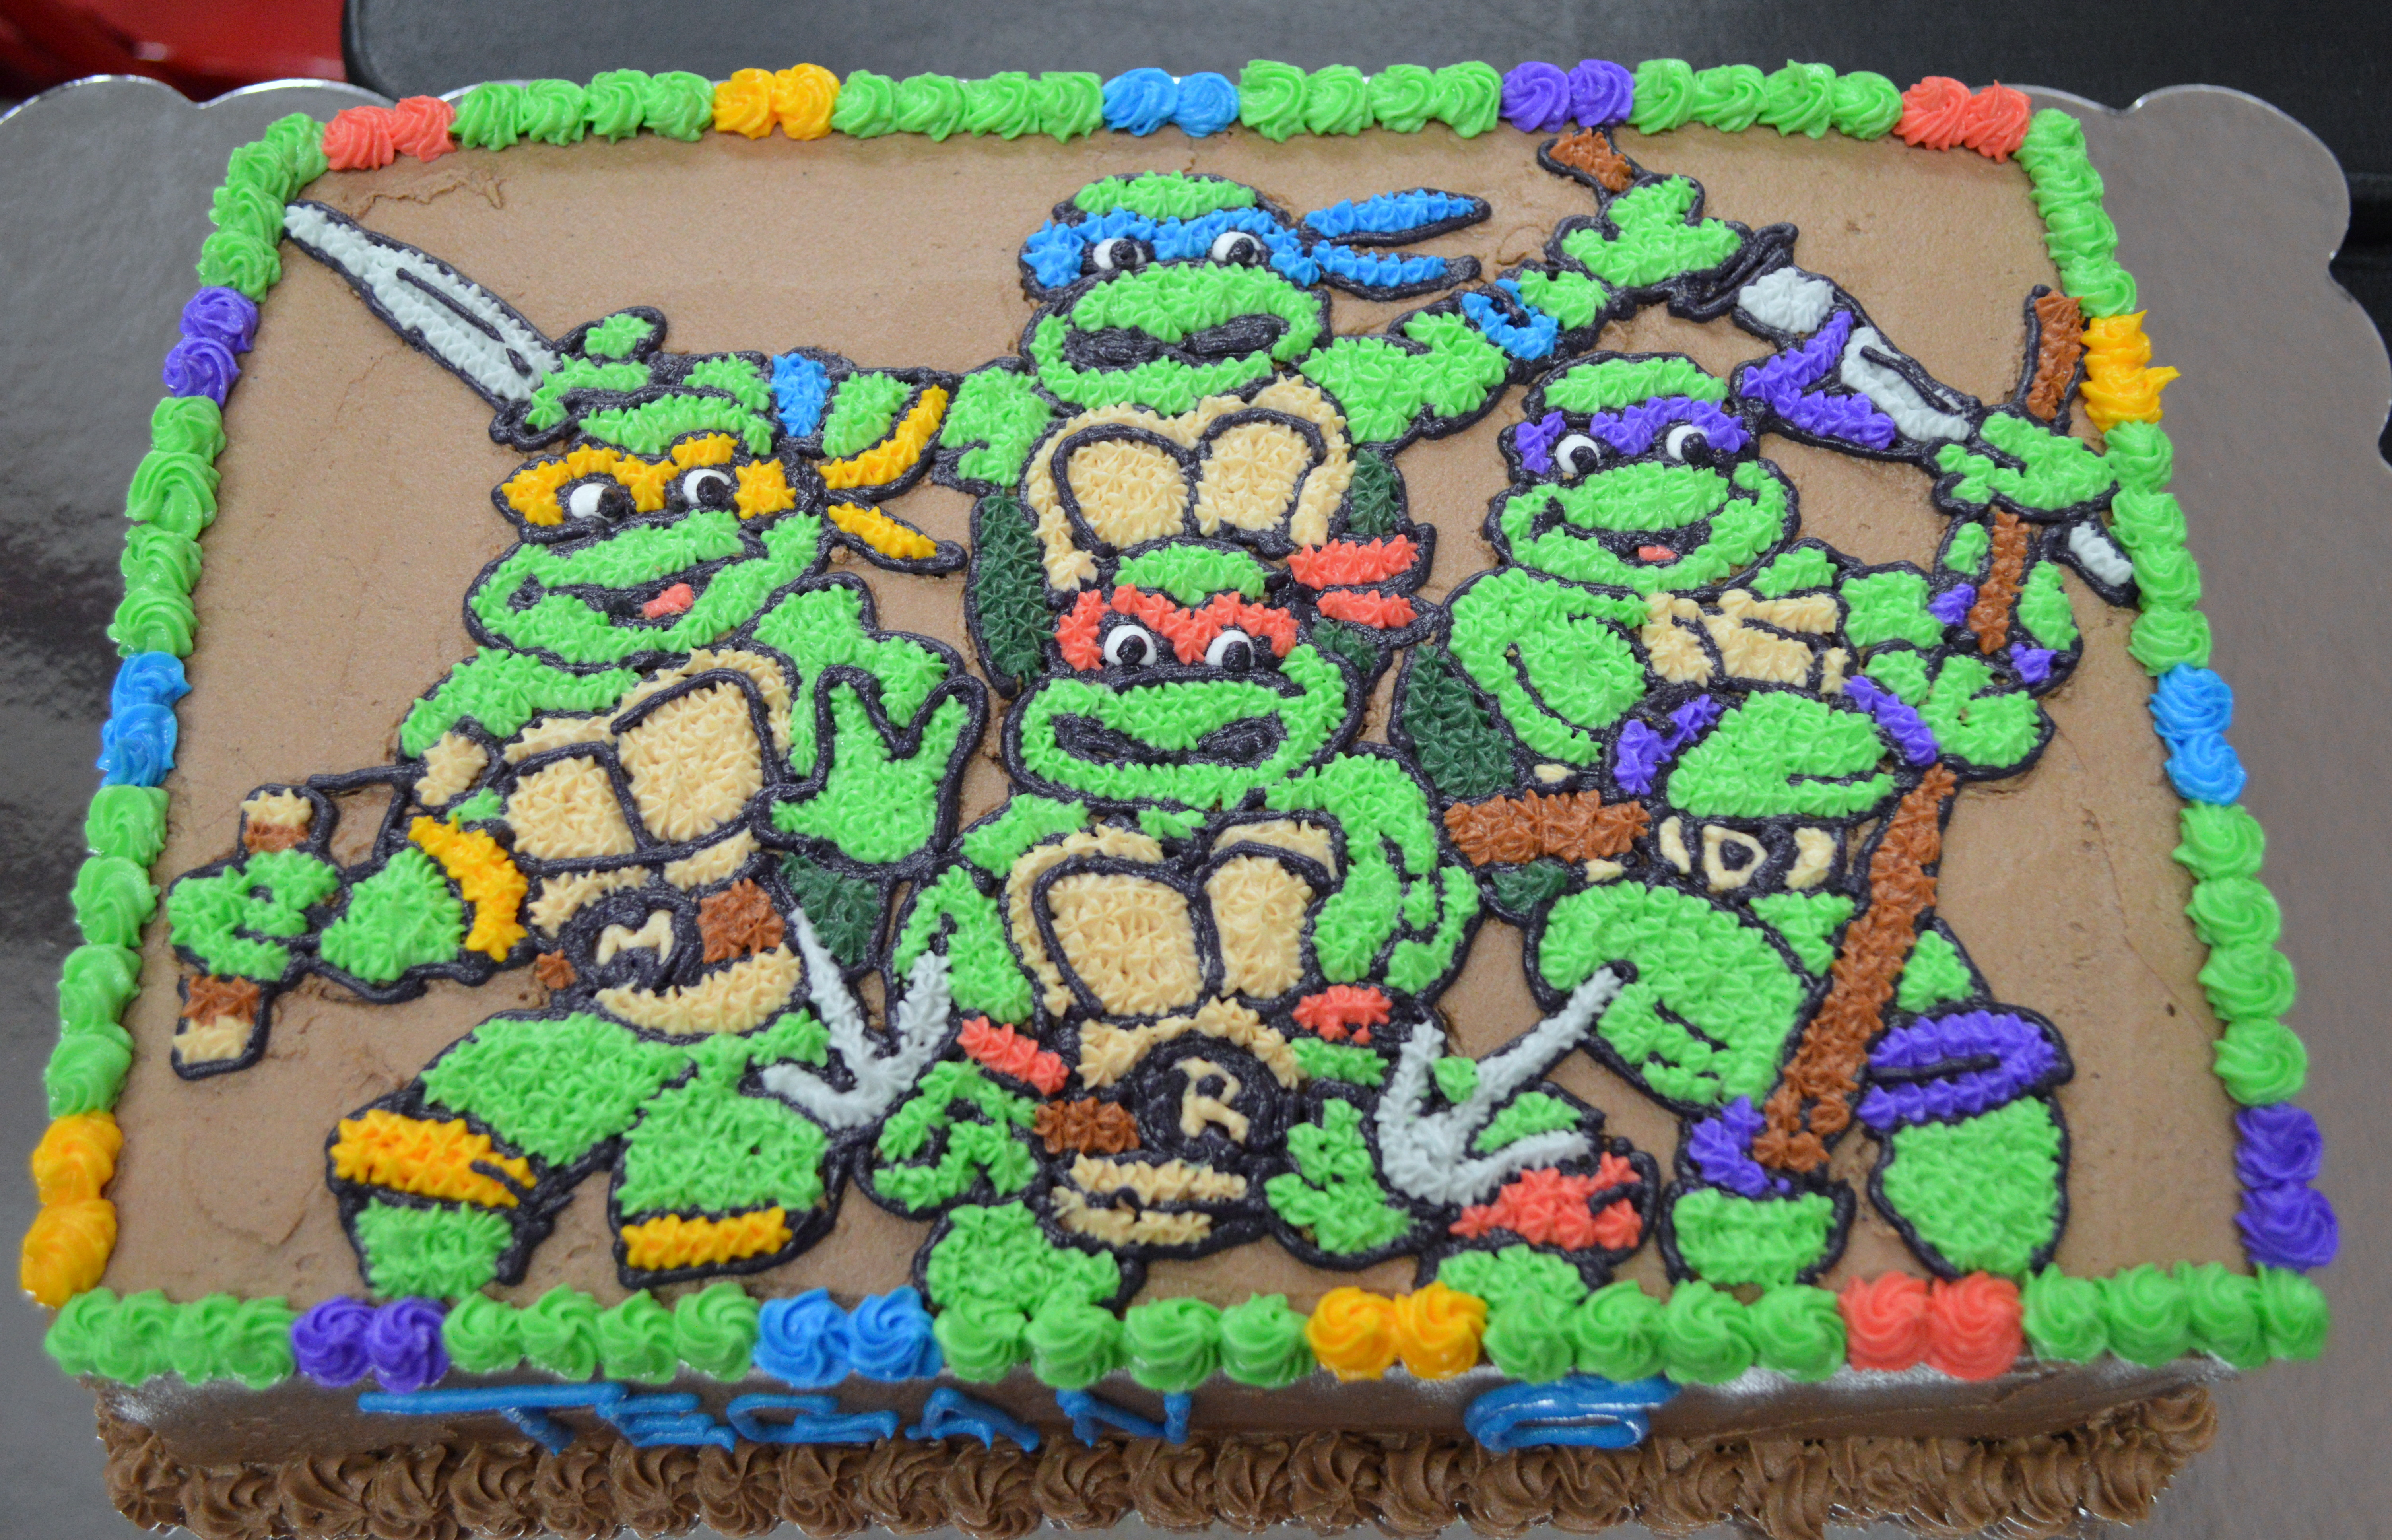 Teenage Mutant Ninja Turtle Cake | A Little of This and a ...